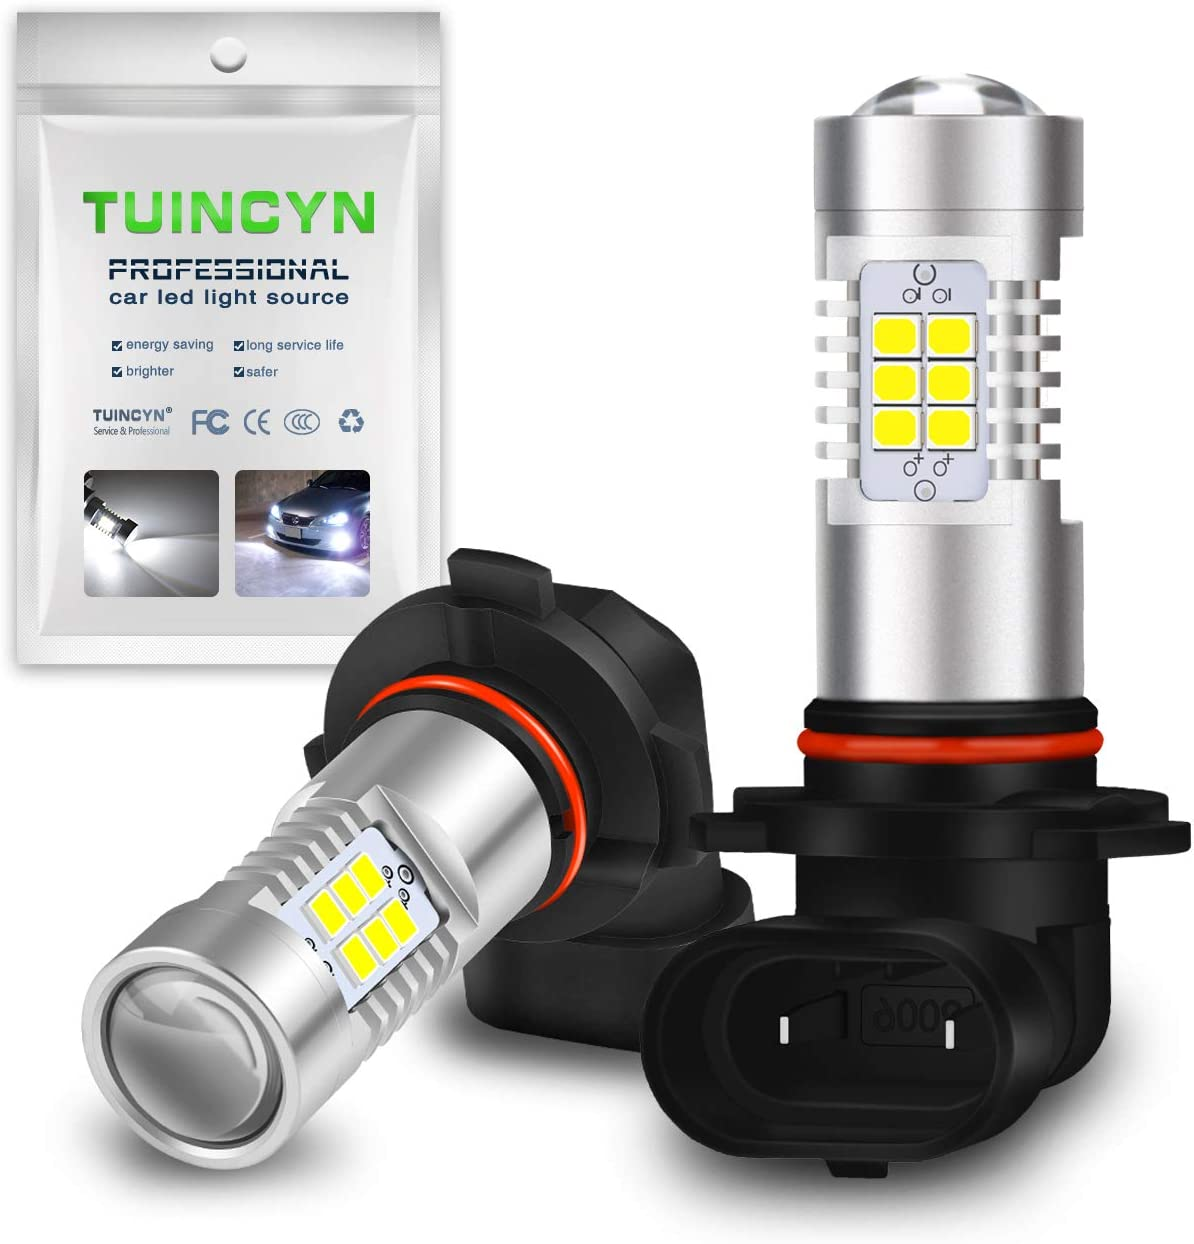 TUINCYN 9006 HB4 LED Fog Light Bulb DRL Lamp Replacement 2835 21SMD 6500K Xenon White Extremely Bright LED Car Driving Daytime Running Lights 10.5W DC 12V 2-Pack